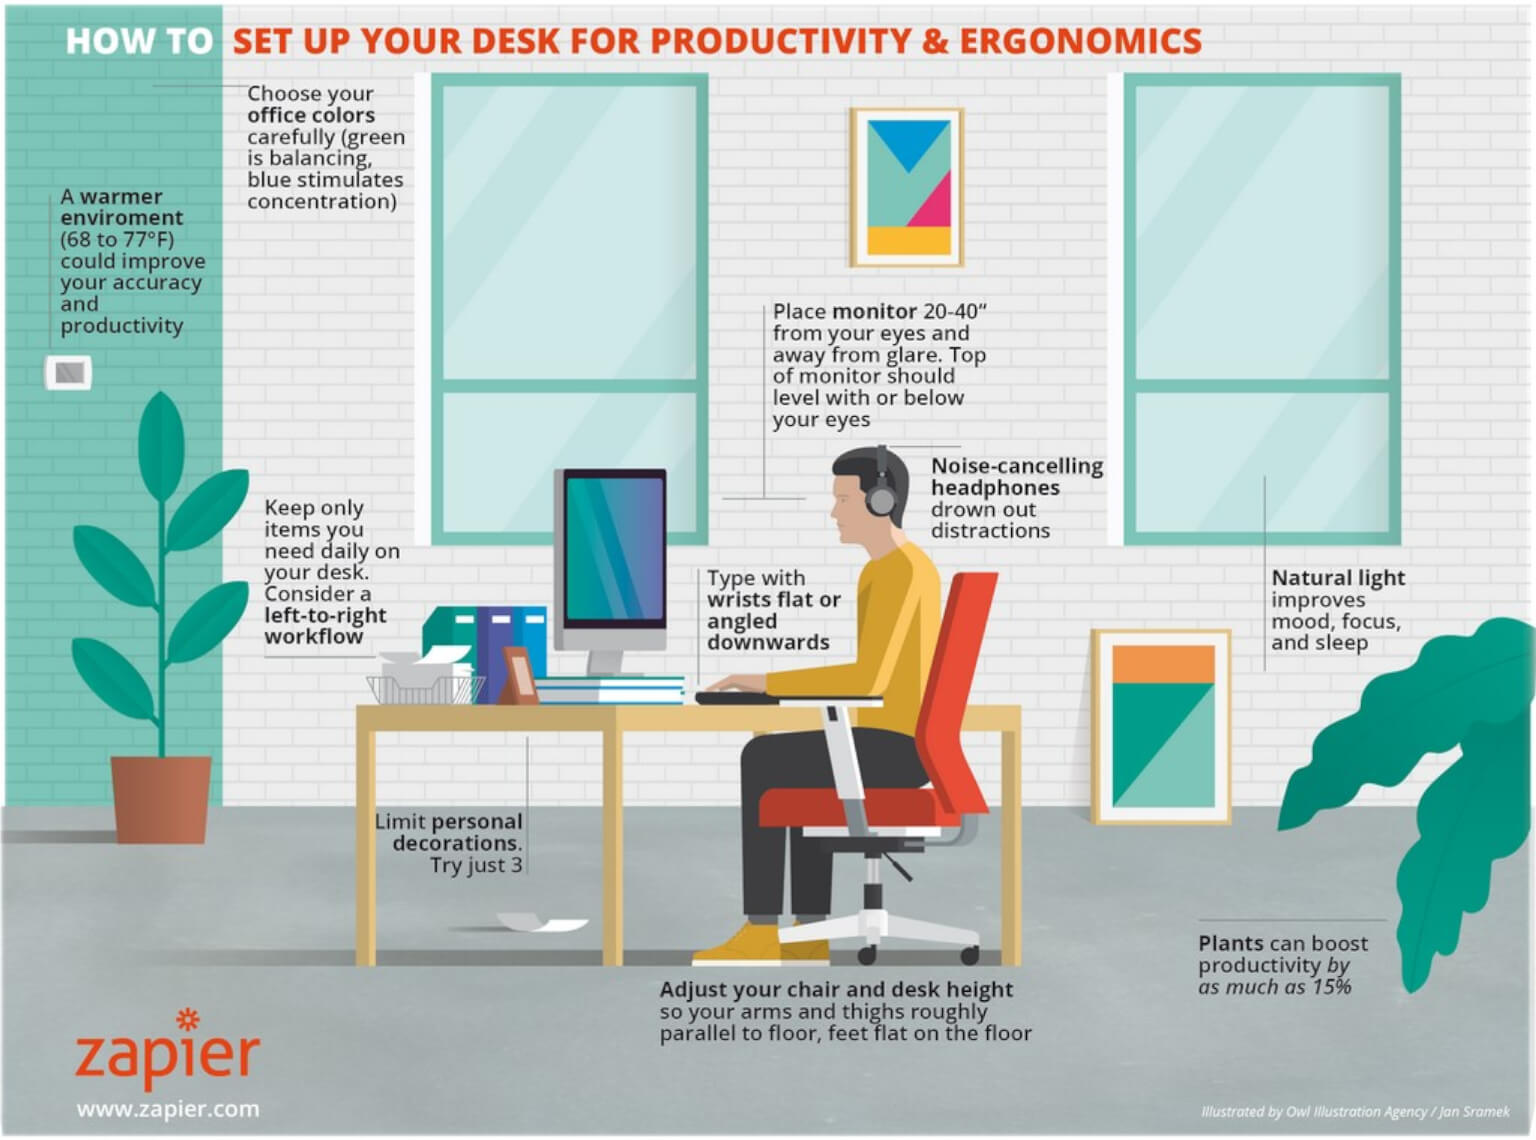 How to set up your desk for productivity & ergonomics